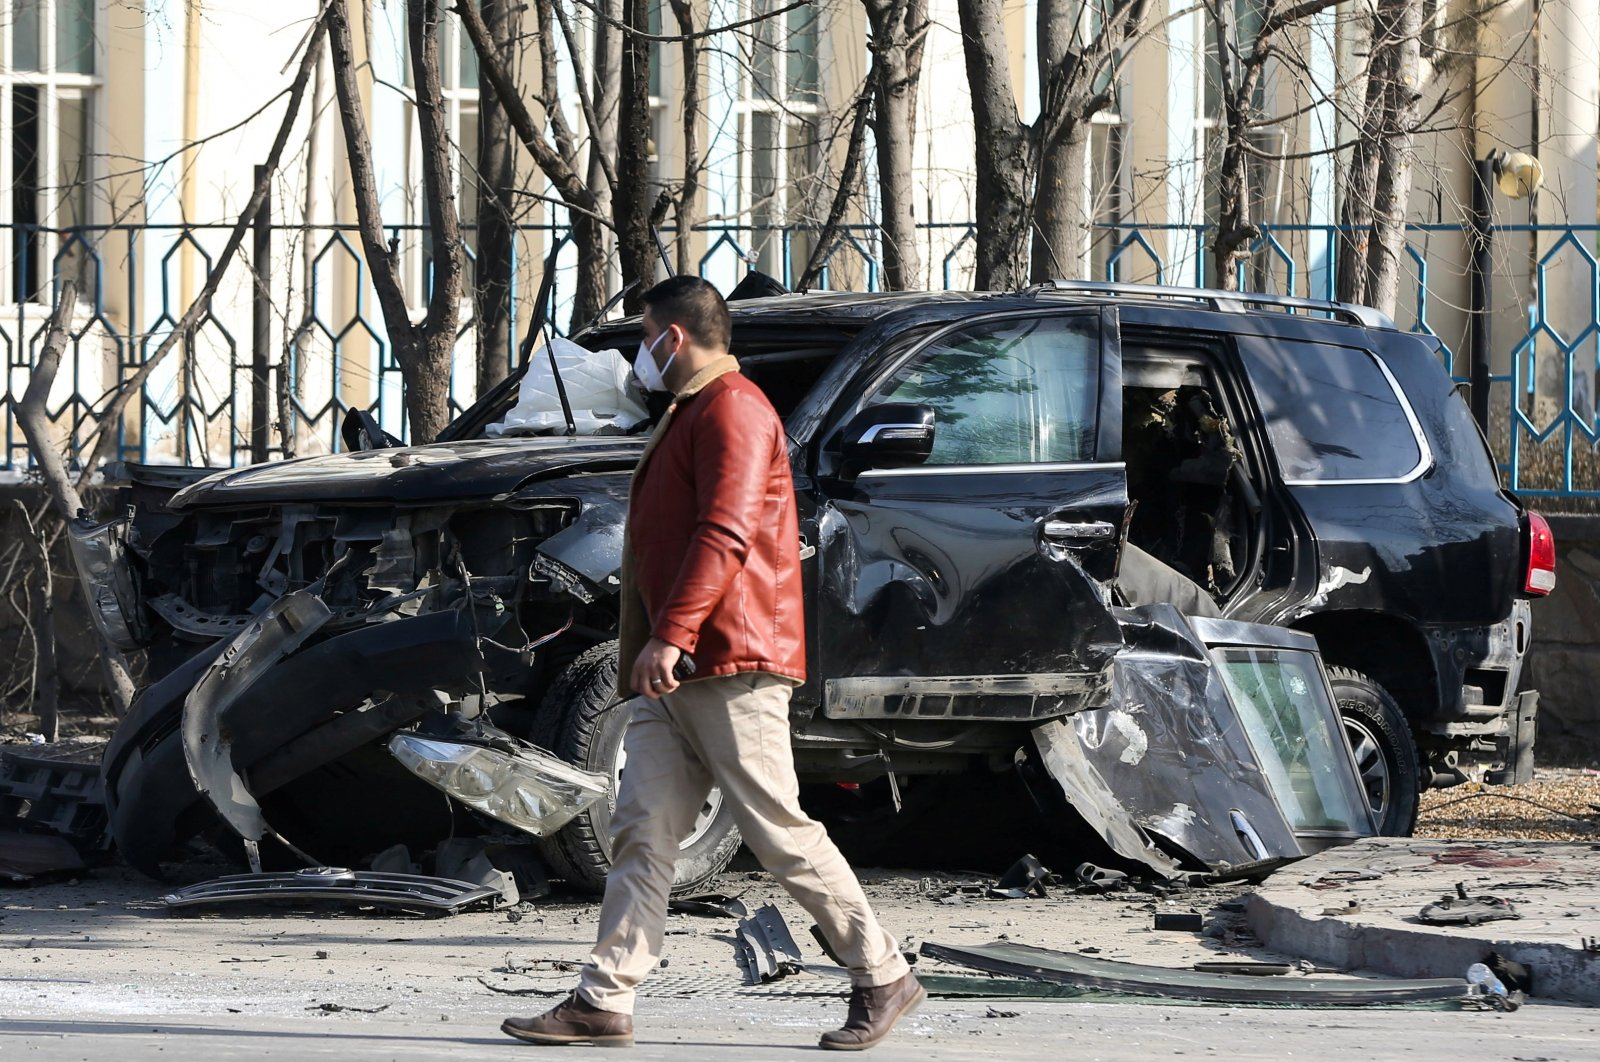 An Afghan security official inspects the site of a bomb blast in Kabul, Afghanistan Feb. 9, 2021. (Reuters Photo)